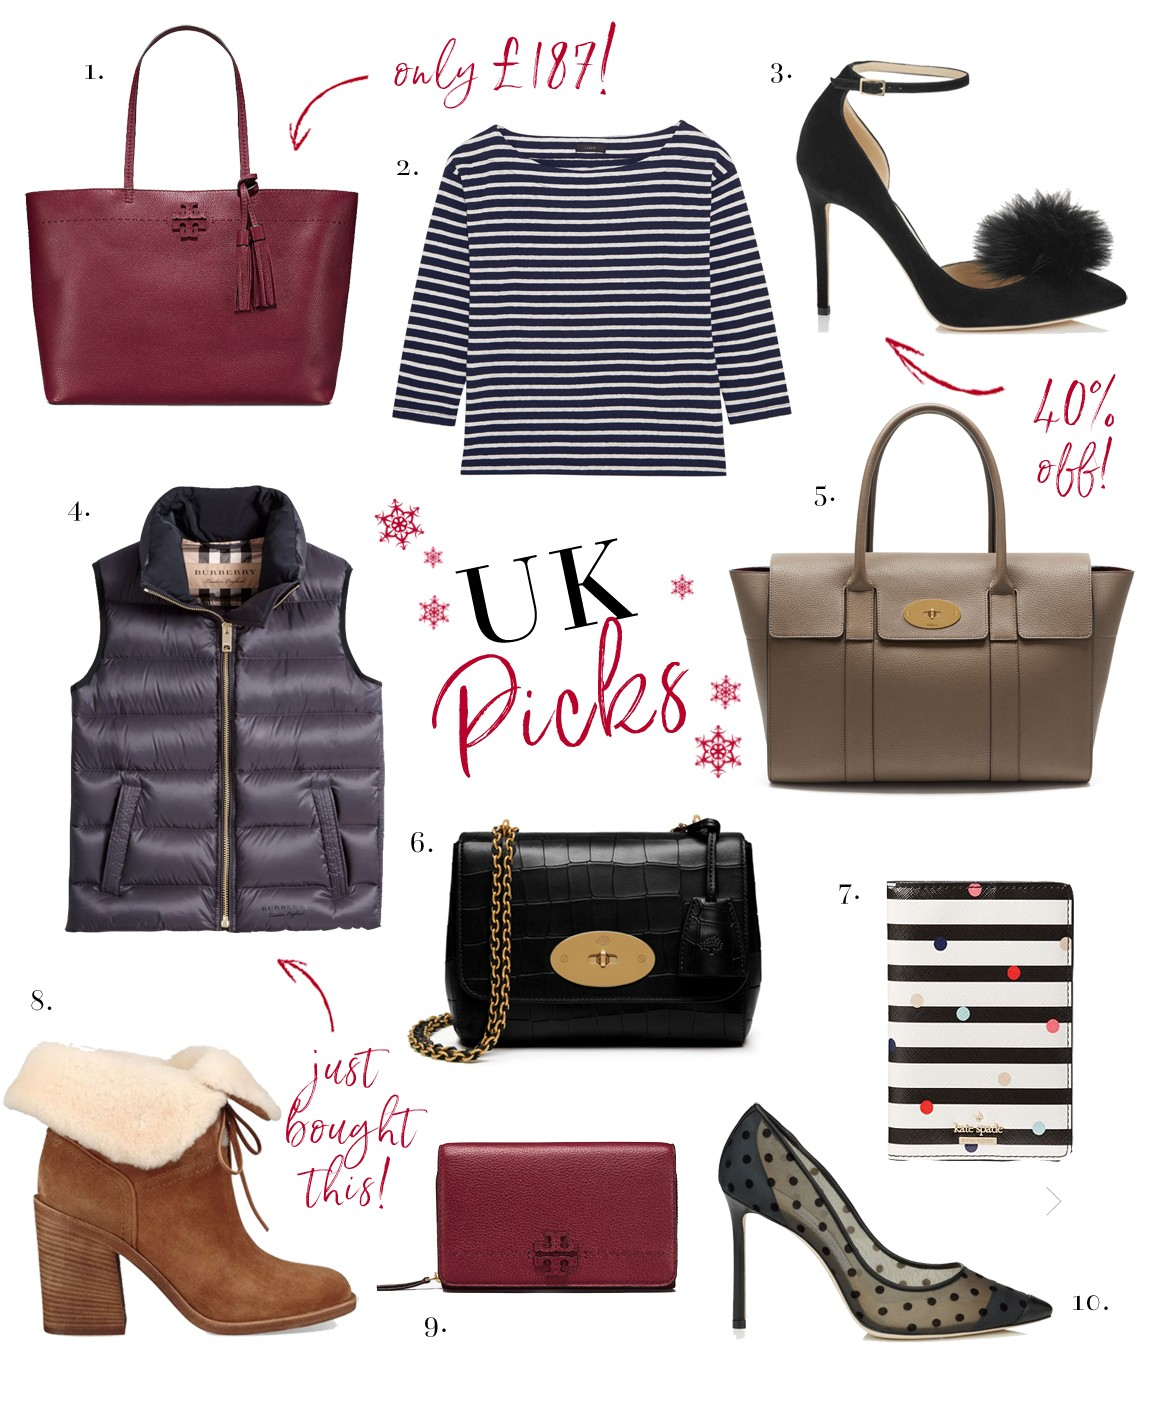 c5ae20da8d7 Tory Burch McGraw Tote    2. Nautical Striped Top    3. Jimmy Choo Pom Pom  Heels    4. Burberry Gilet    5. Mulberry Bayswater    6. Mulberry Lily Bag     7.